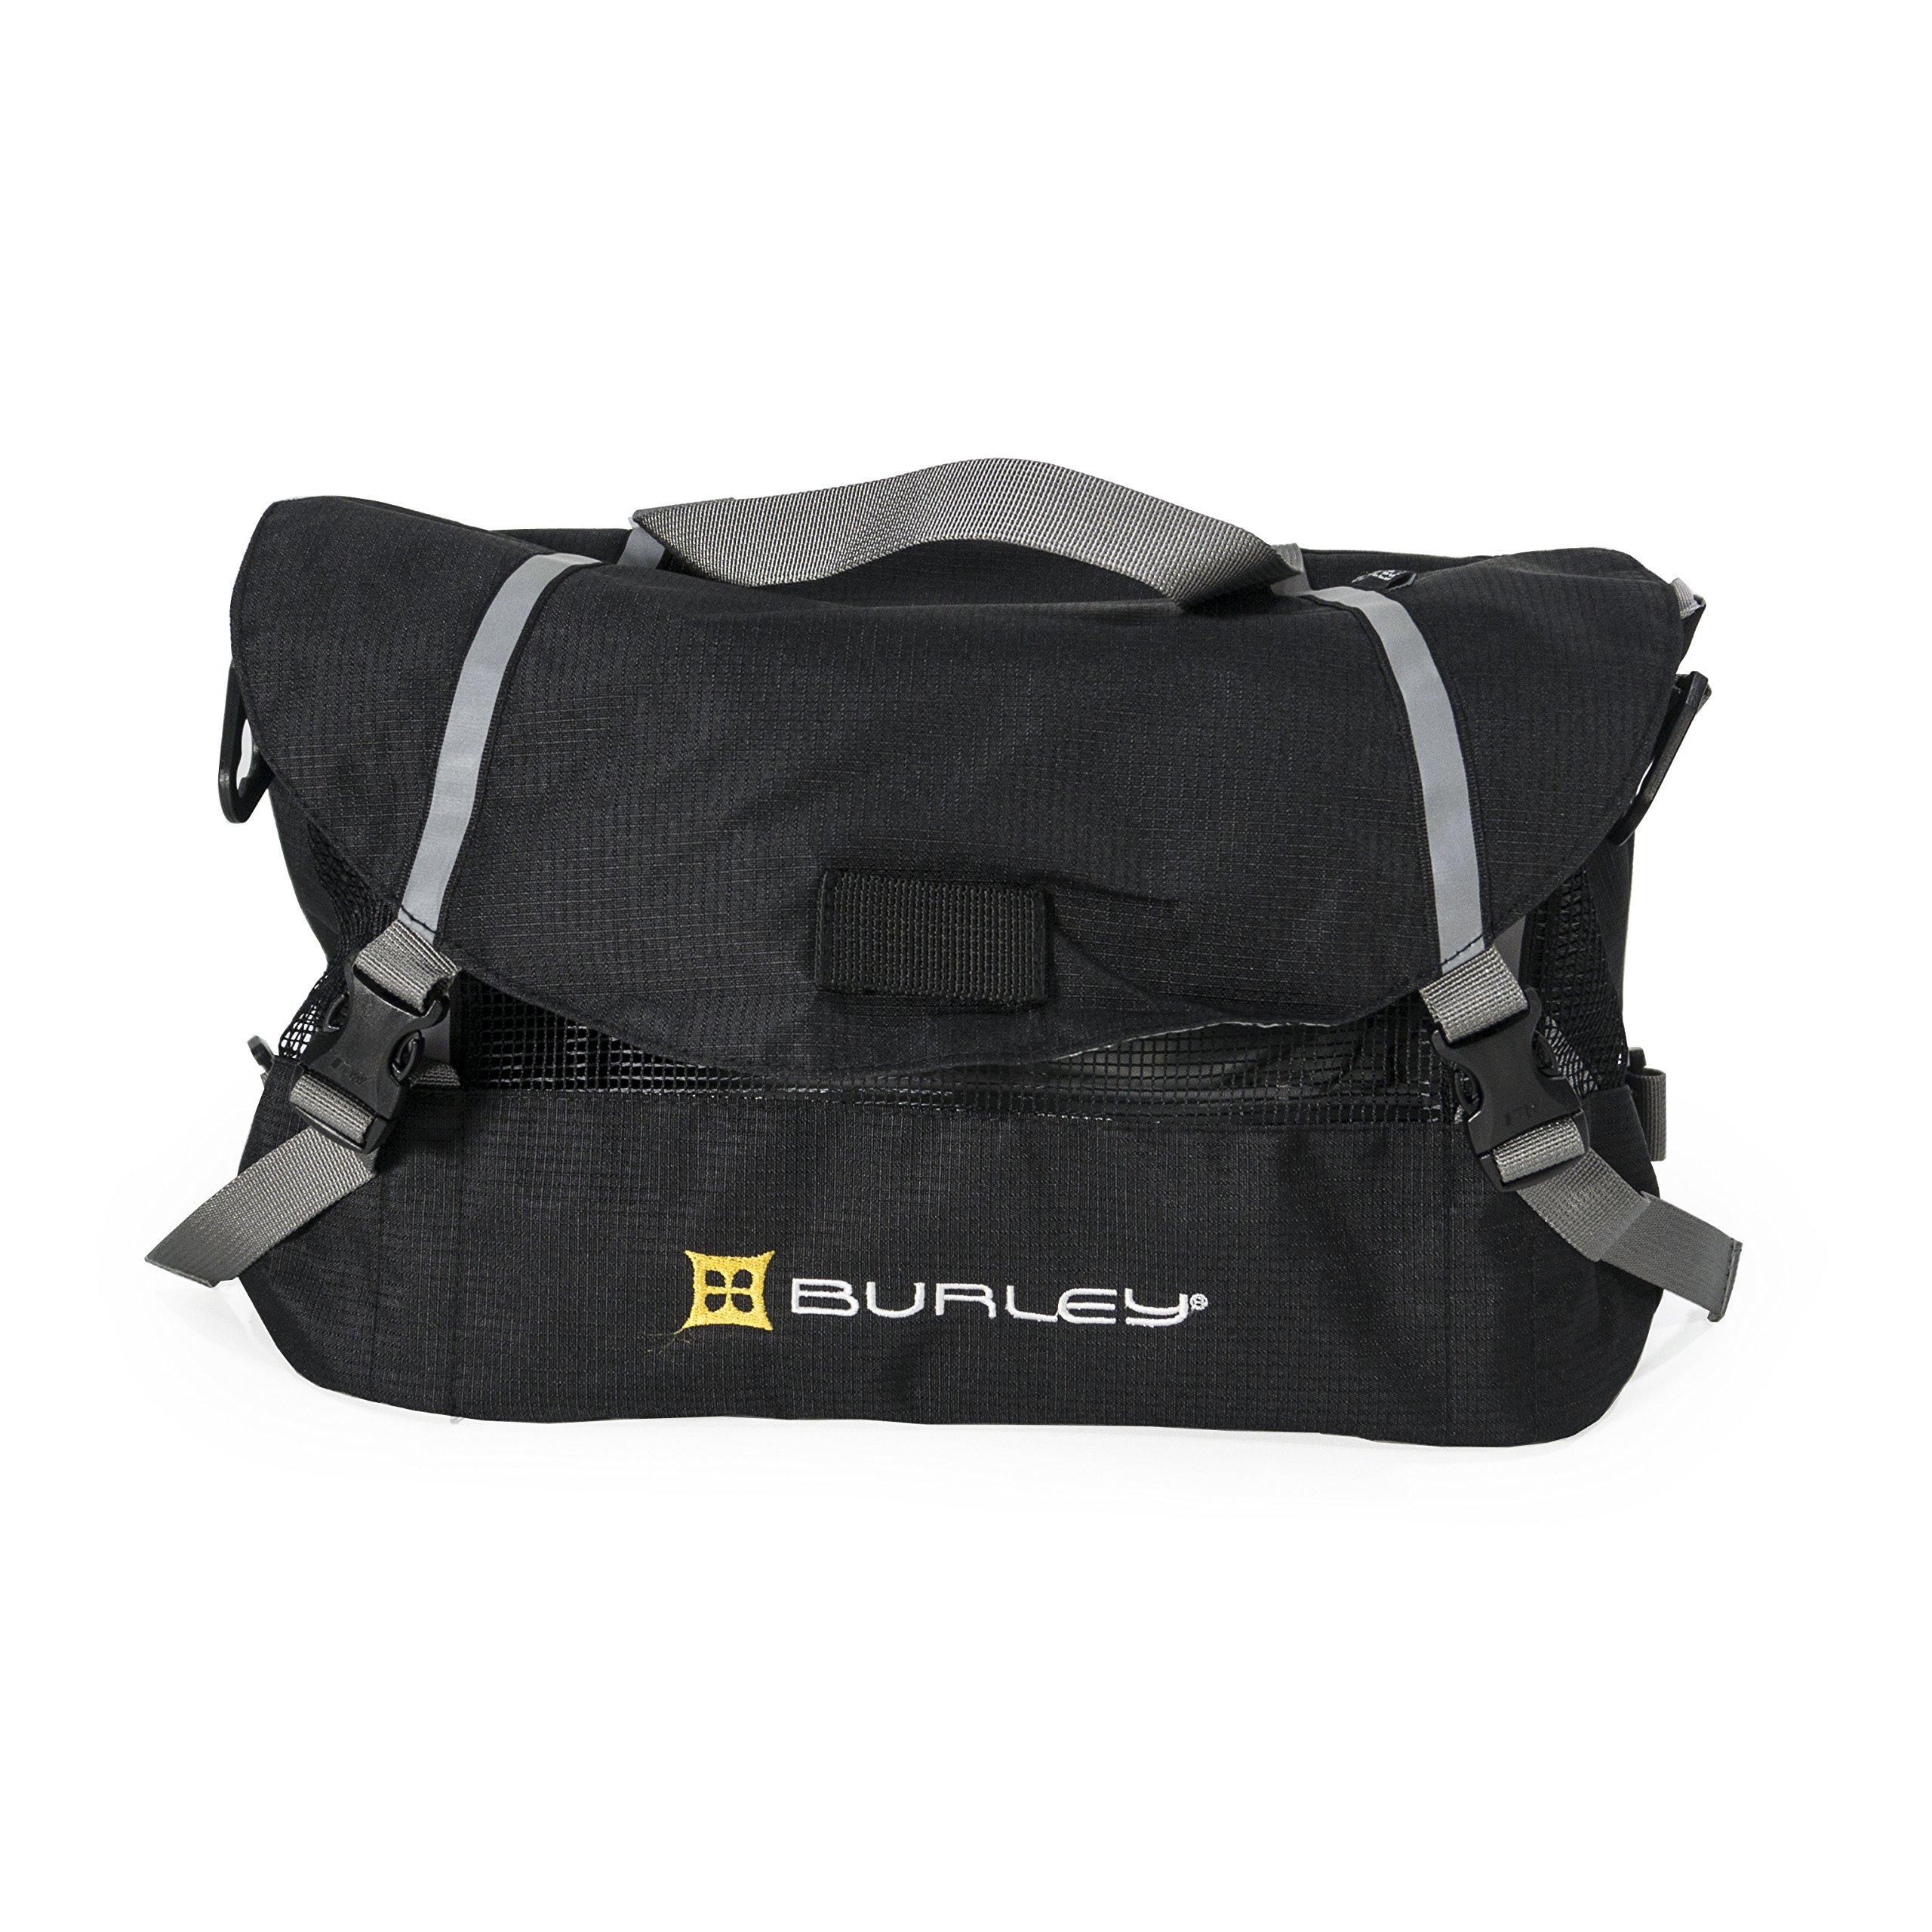 Burley Design Upper Transit Bag, Black